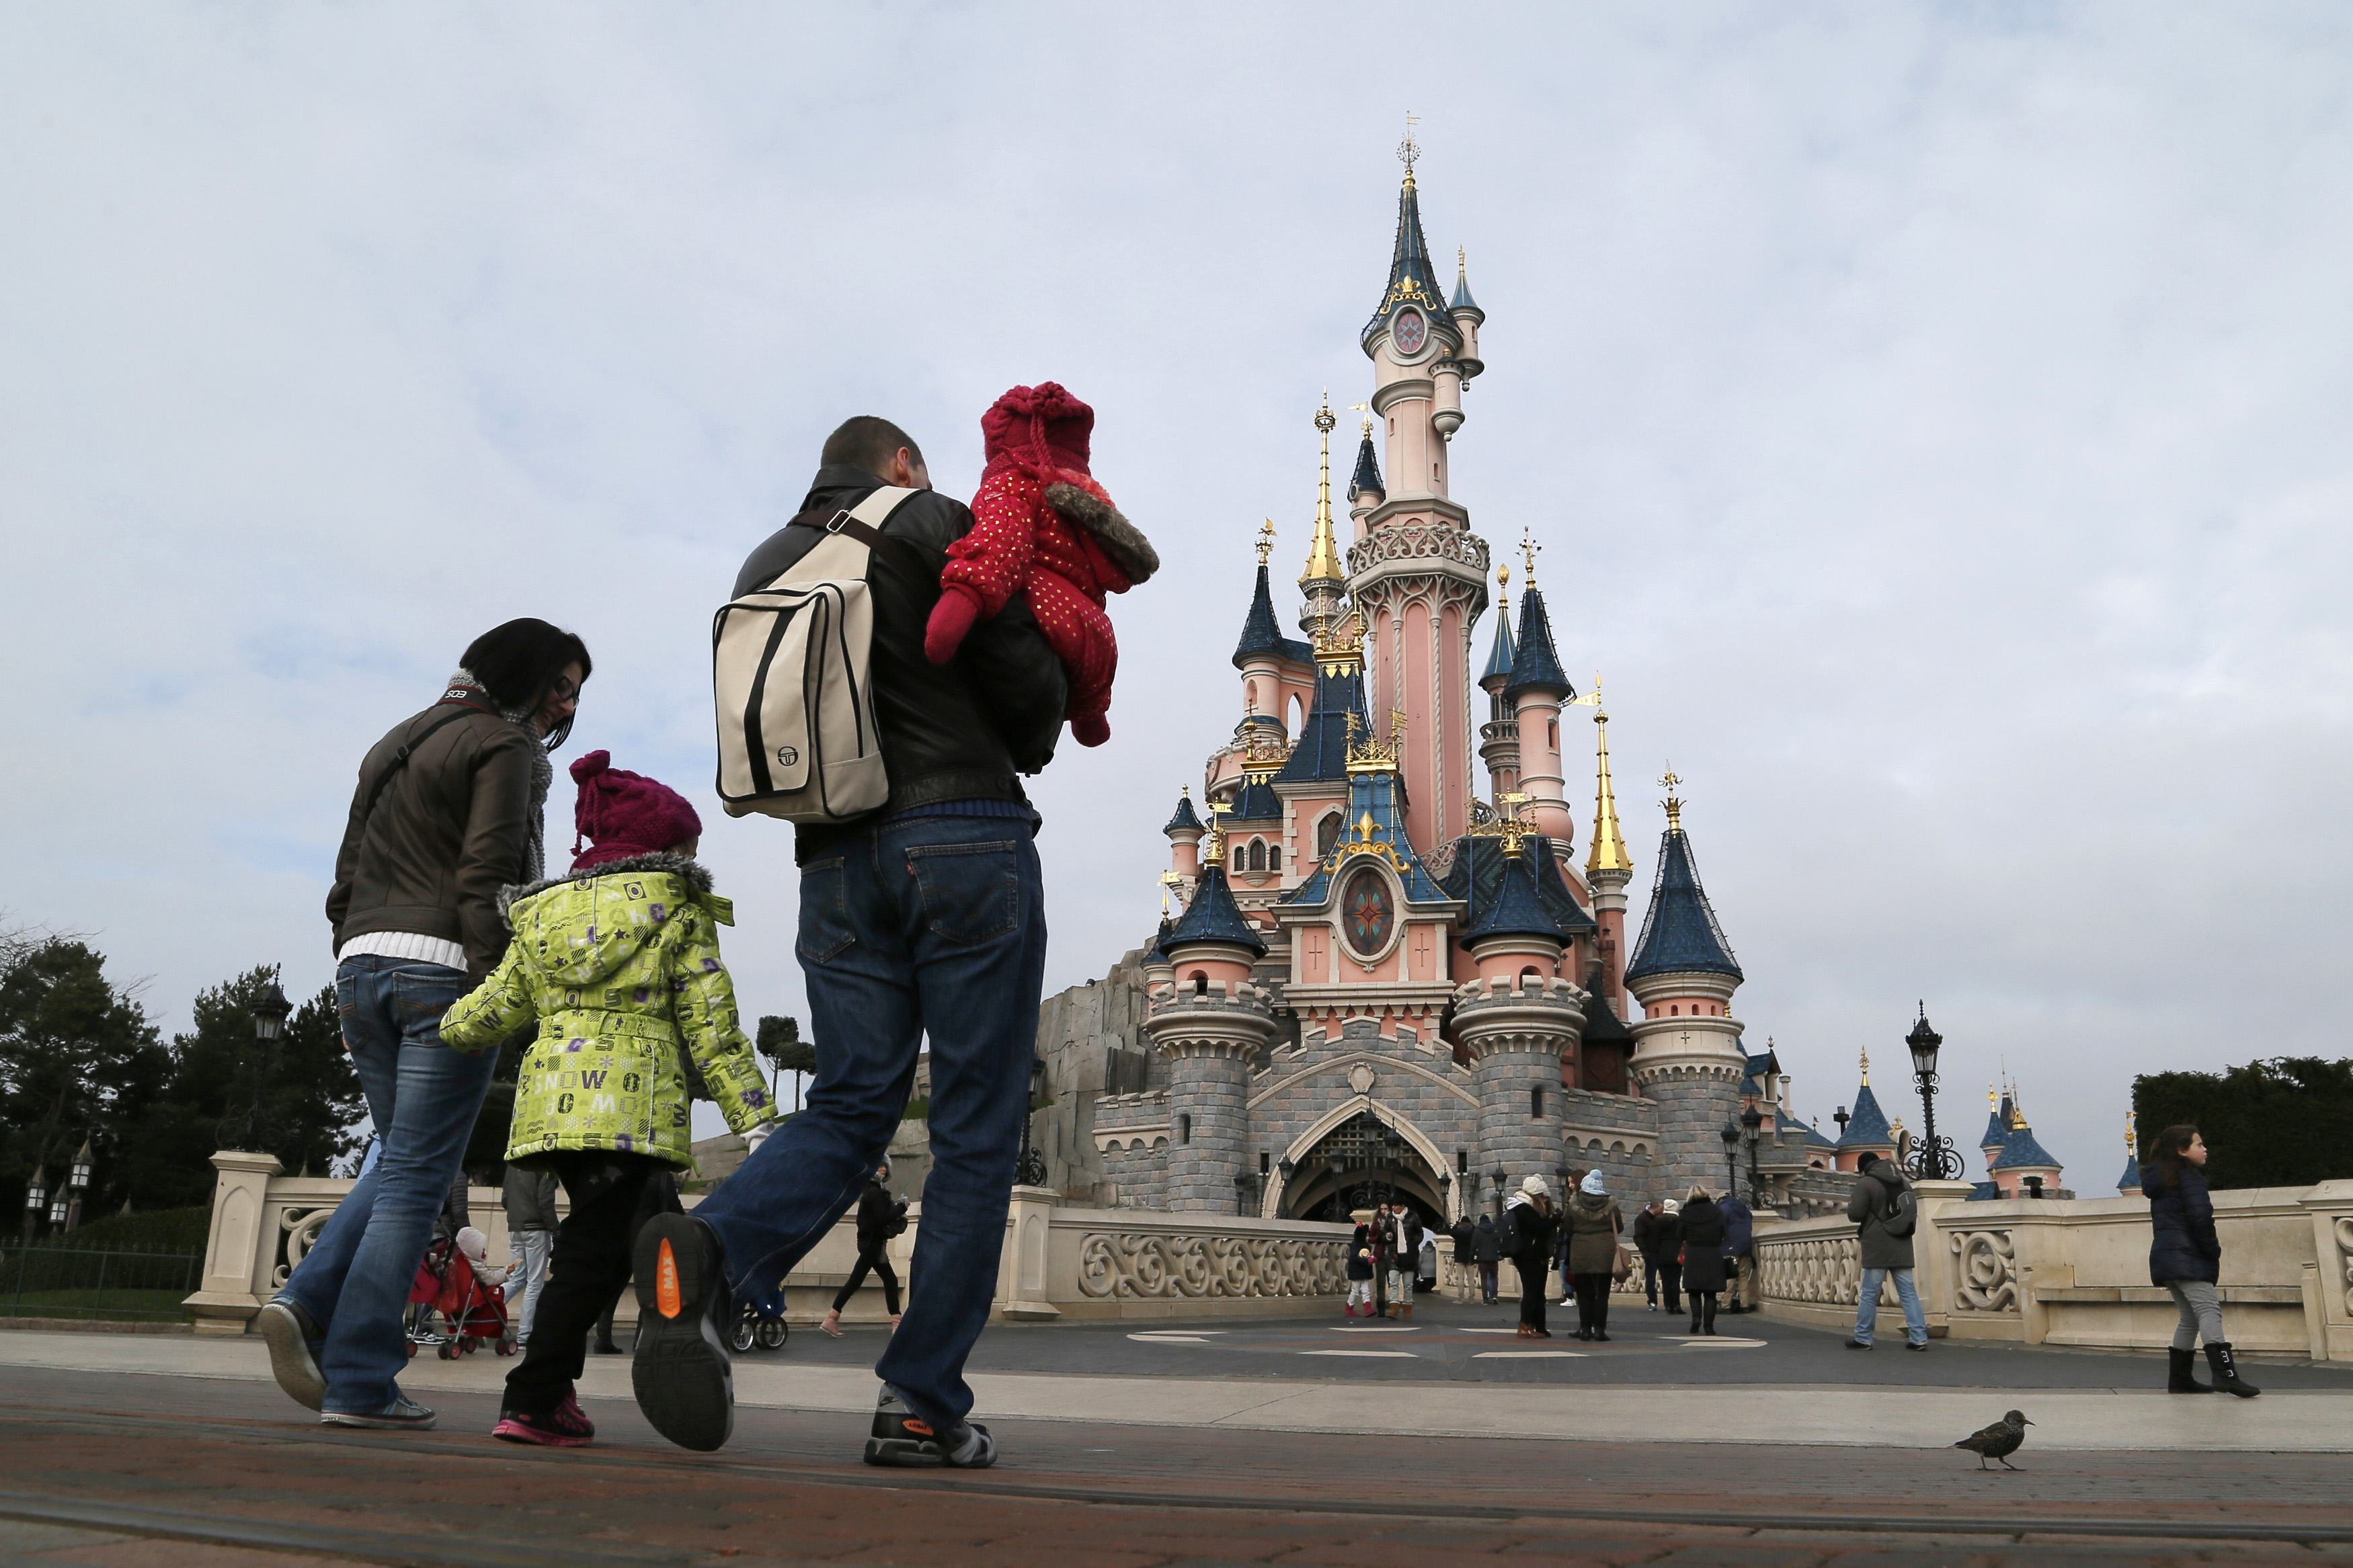 Visitors walk towards the Sleeping Beauty Castle during a visit to the Disneyland Paris Resort run by EuroDisney S.C.A in Marne-la-Vallee on Jan. 21, 2015.